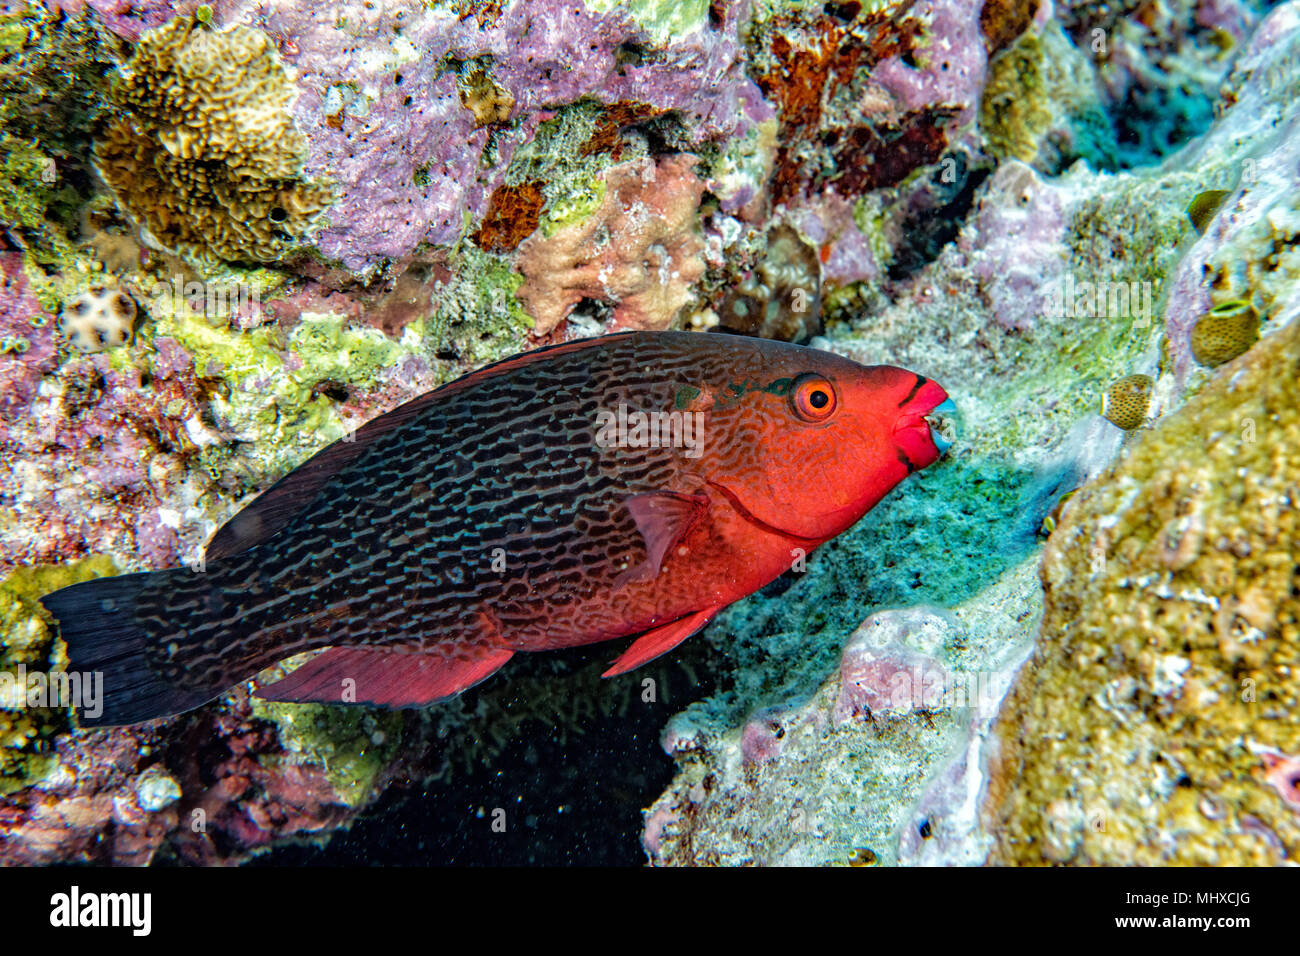 Parrot Fish Stock Photos & Parrot Fish Stock Images - Page 3 - Alamy